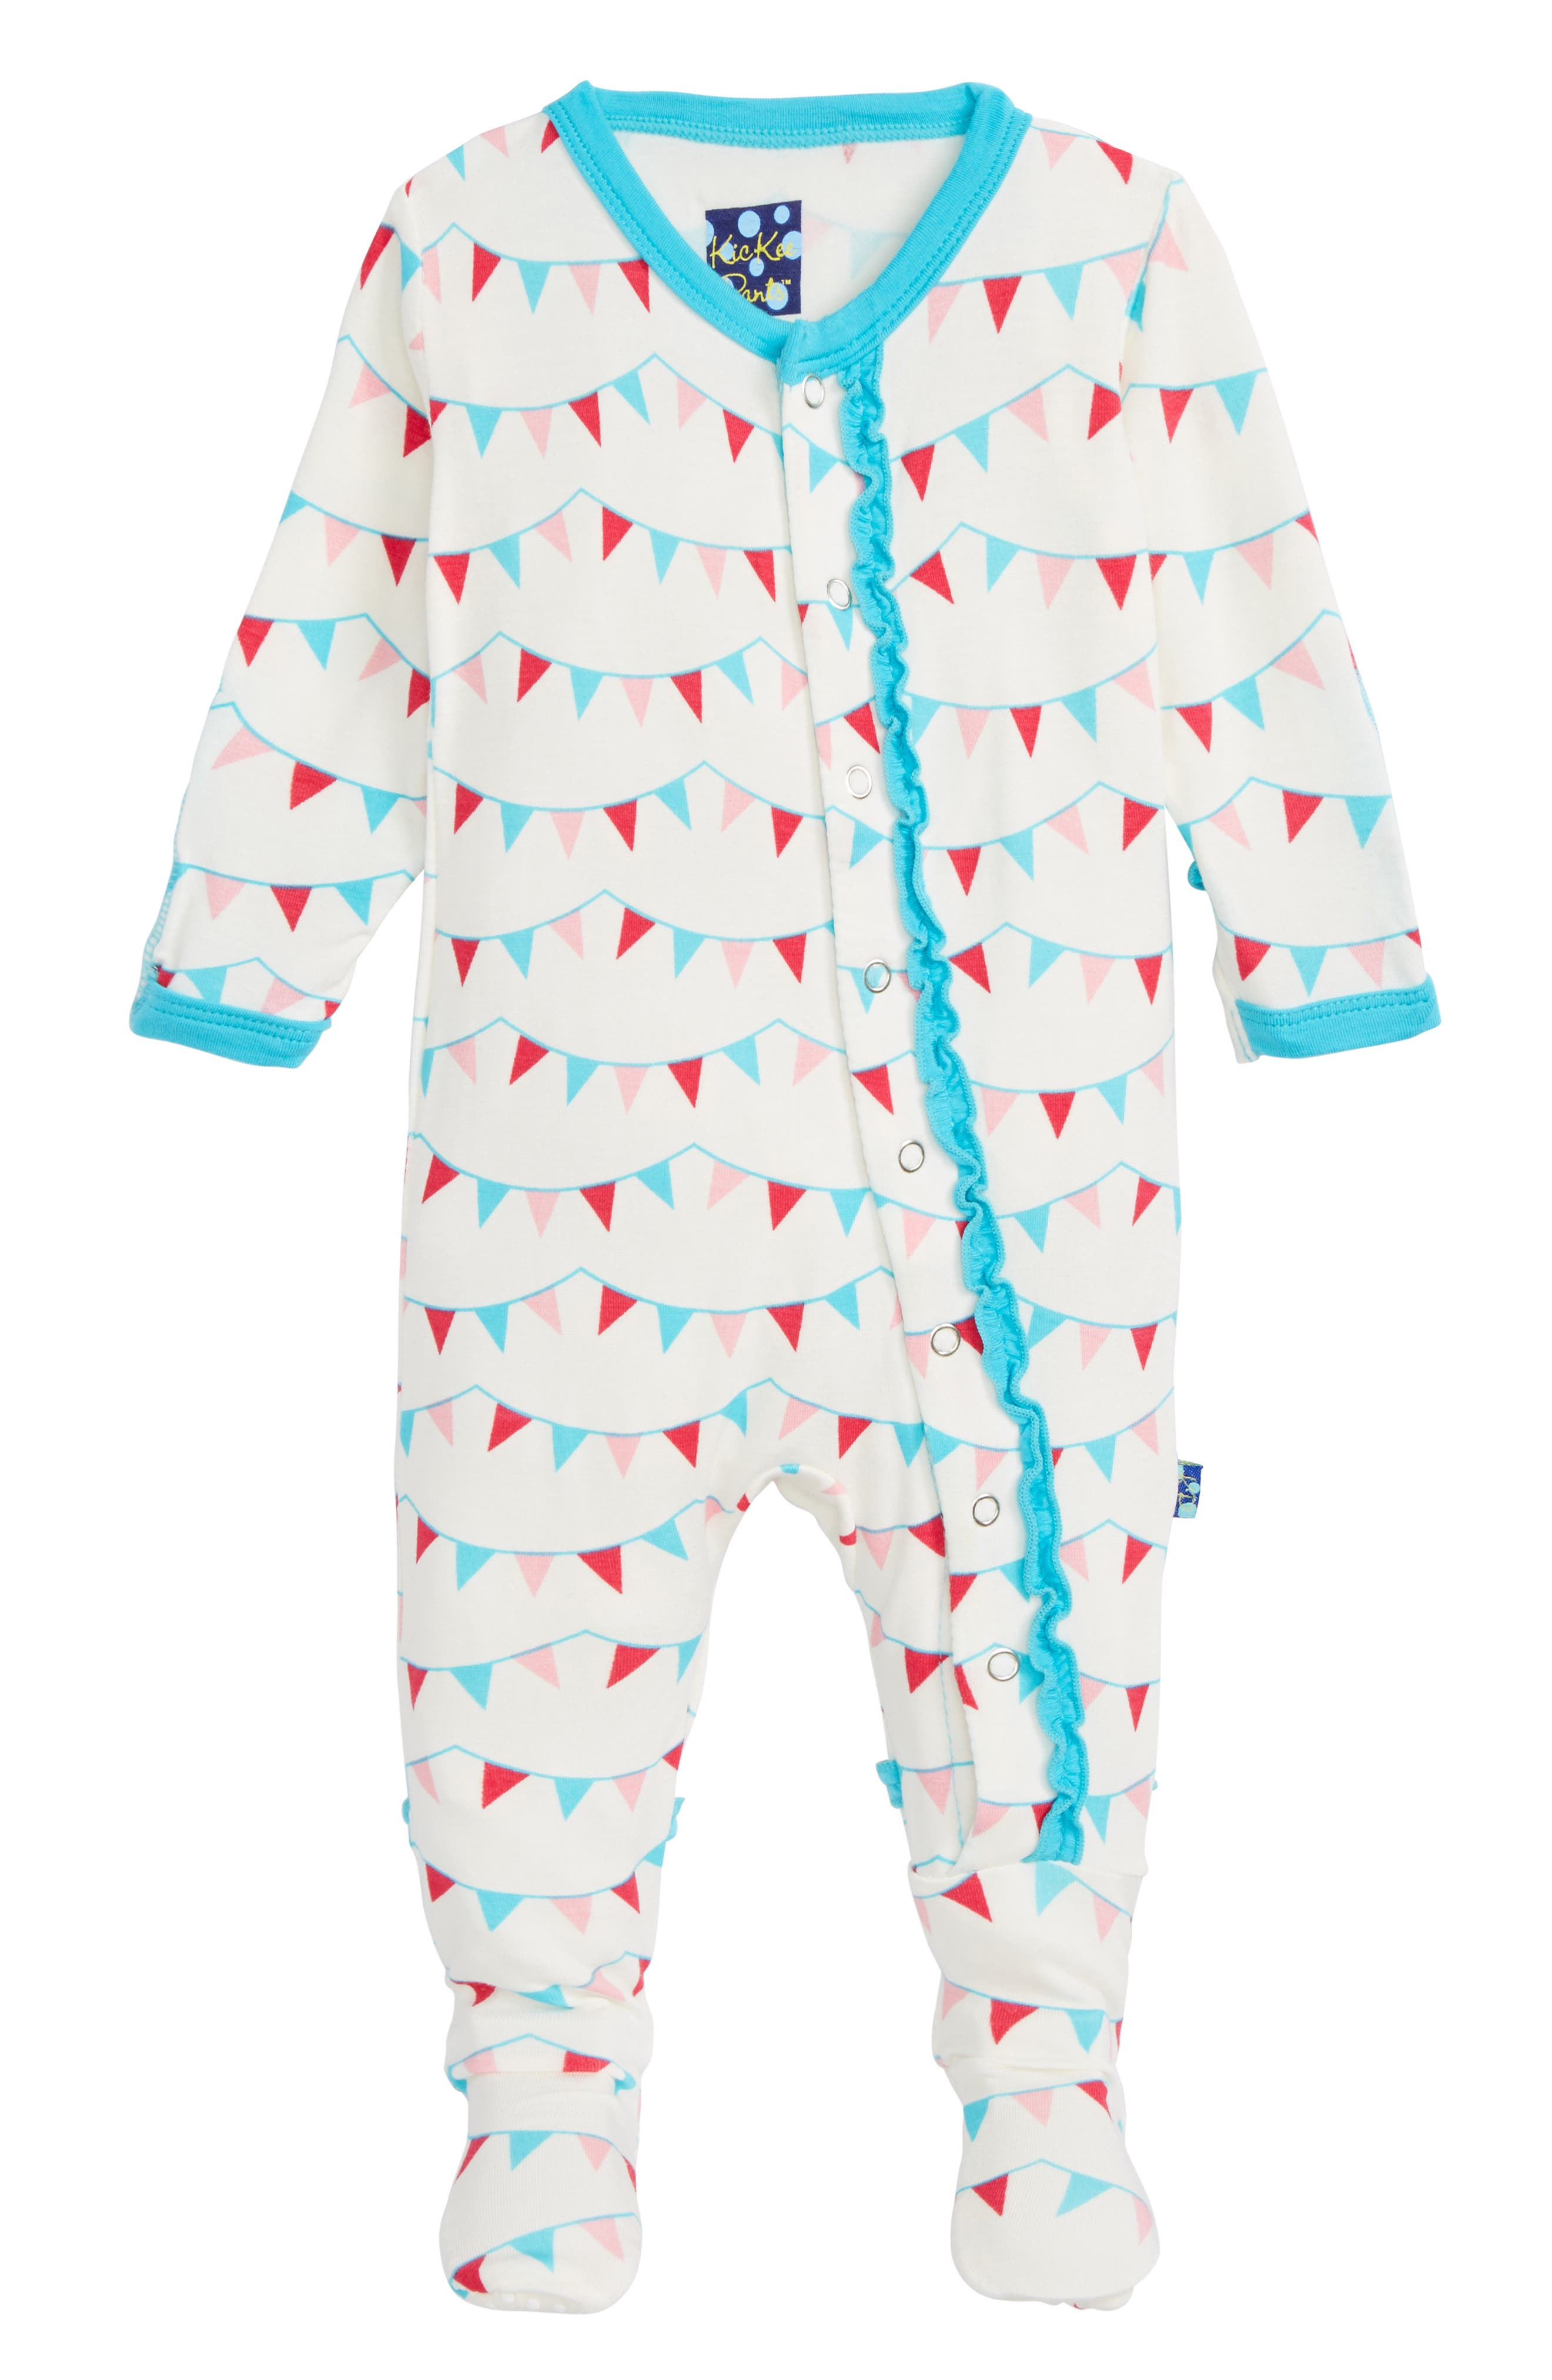 Main Image - Kickee Pants Party Flags Ruffle Footie (Baby Girls)